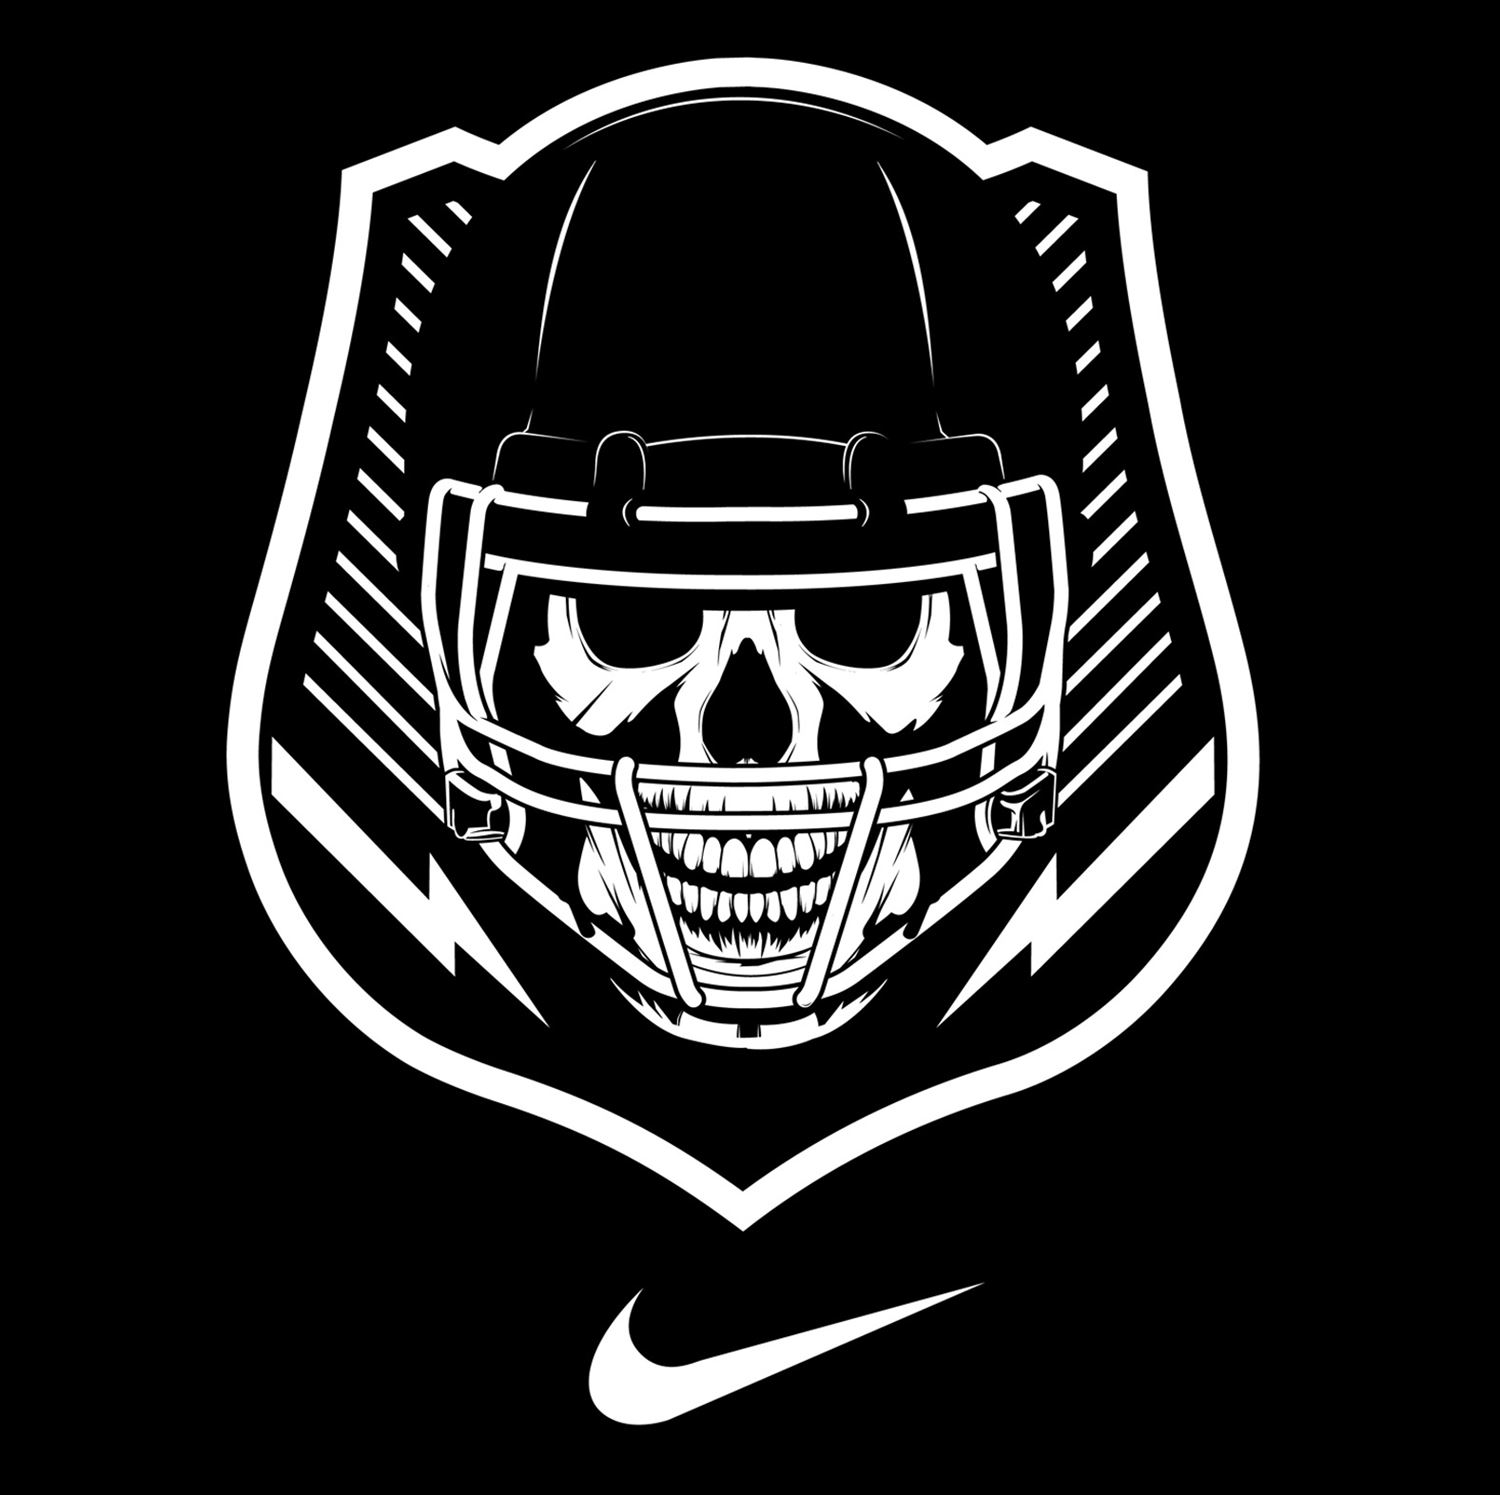 Nike Football - 2014 - 2014, 3/29 Training Camp (Charlotte, NC)